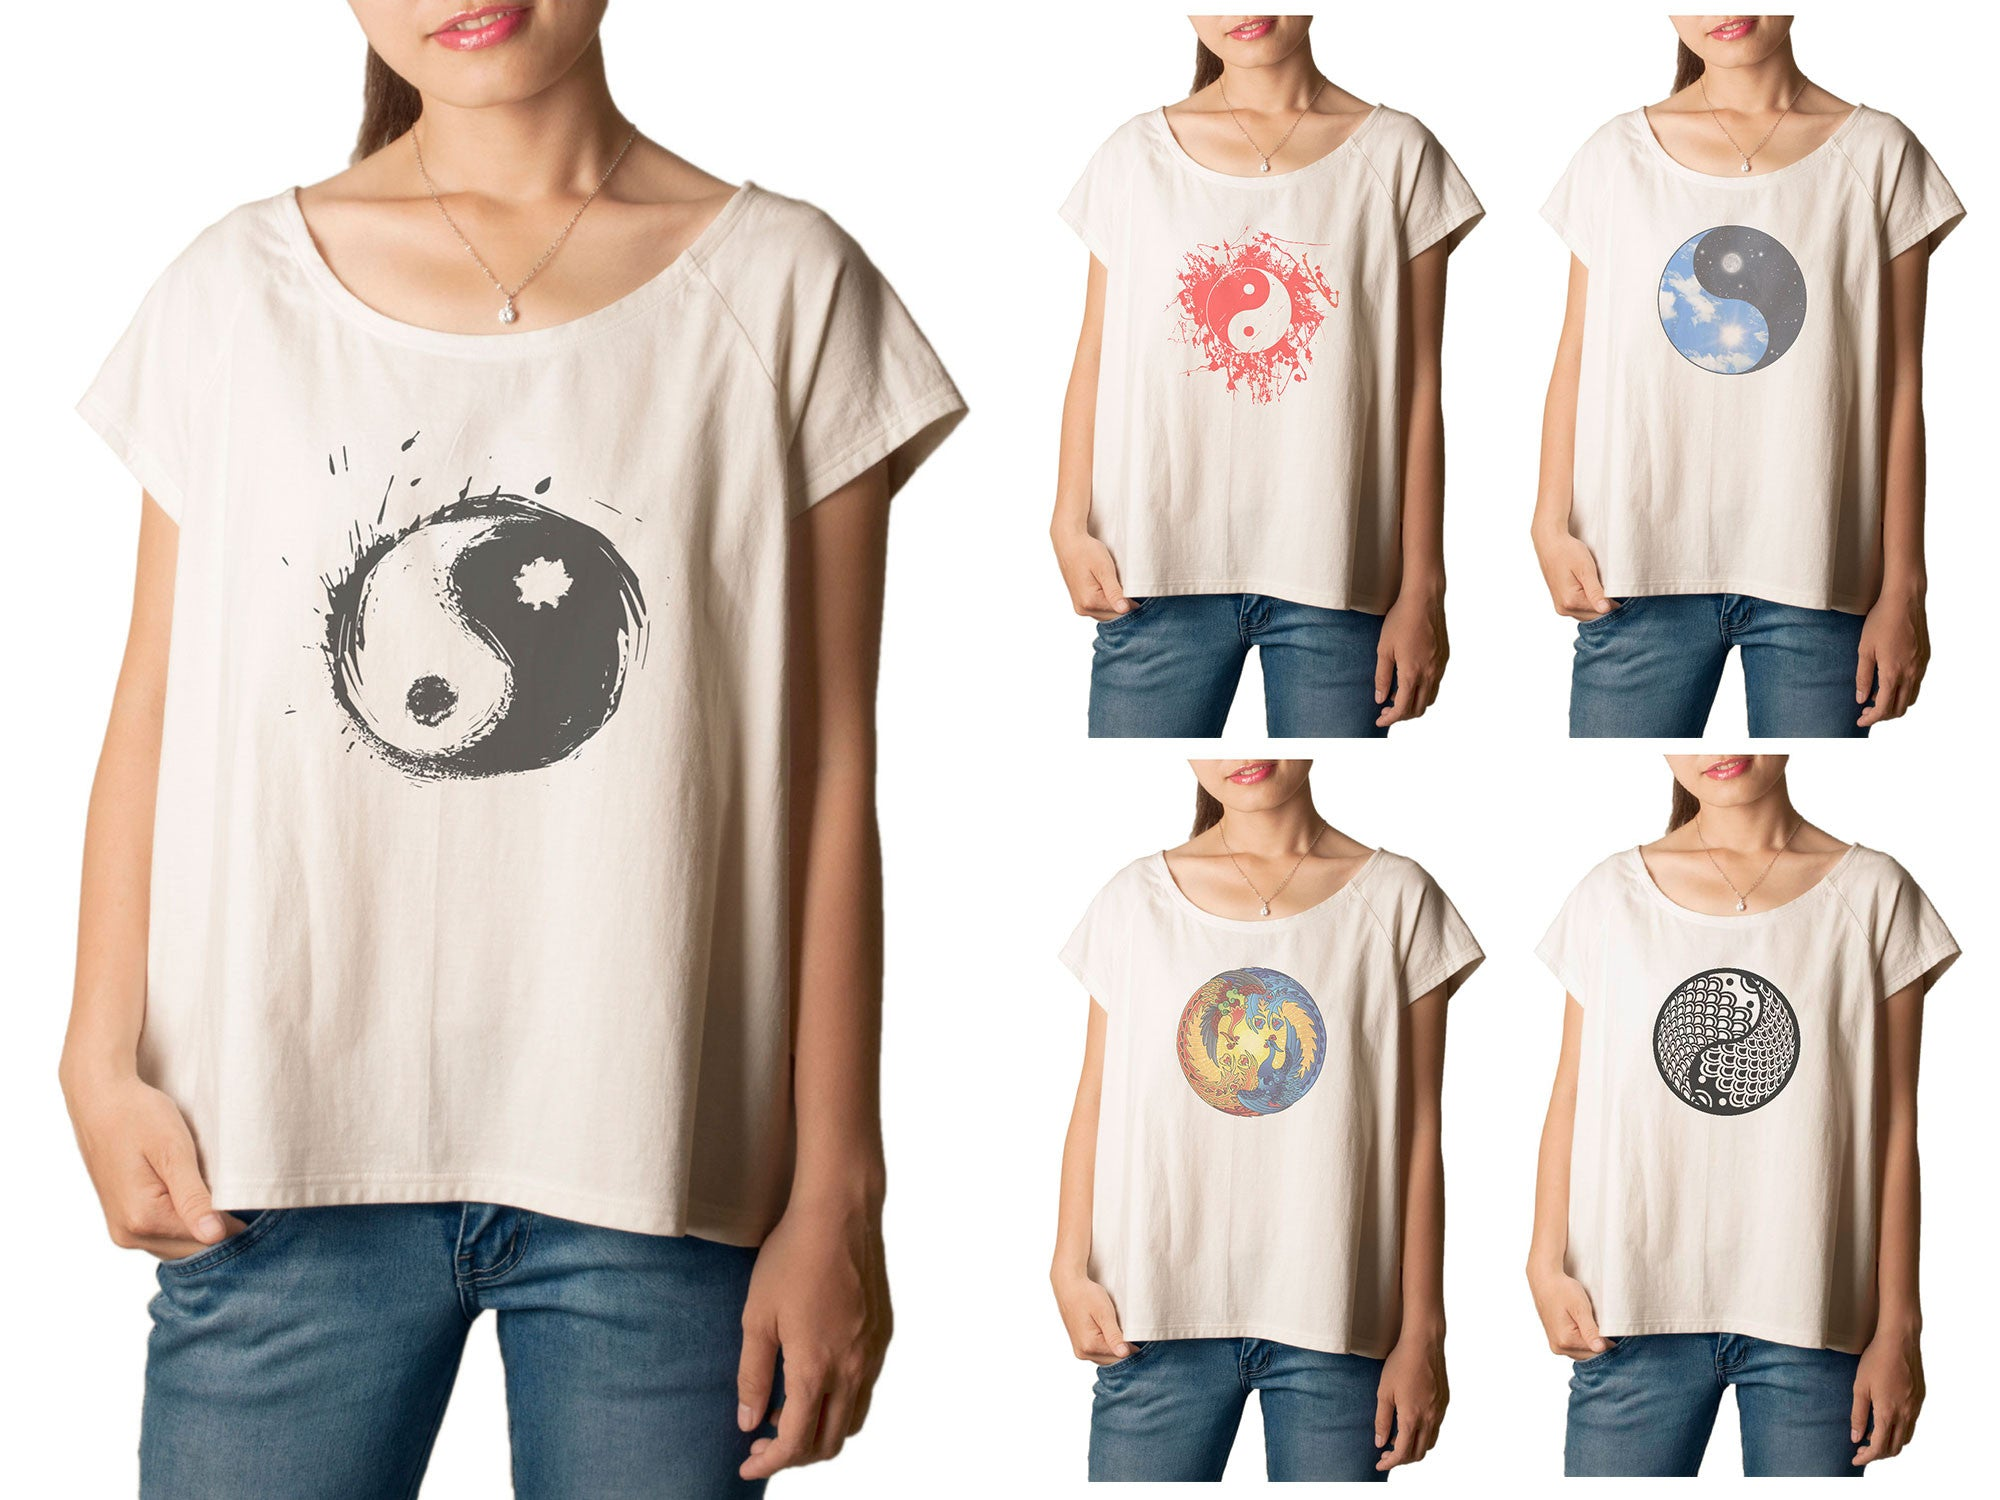 Women's Yin Yang 1 Printed cotton T-shirt  Tee WTS_01